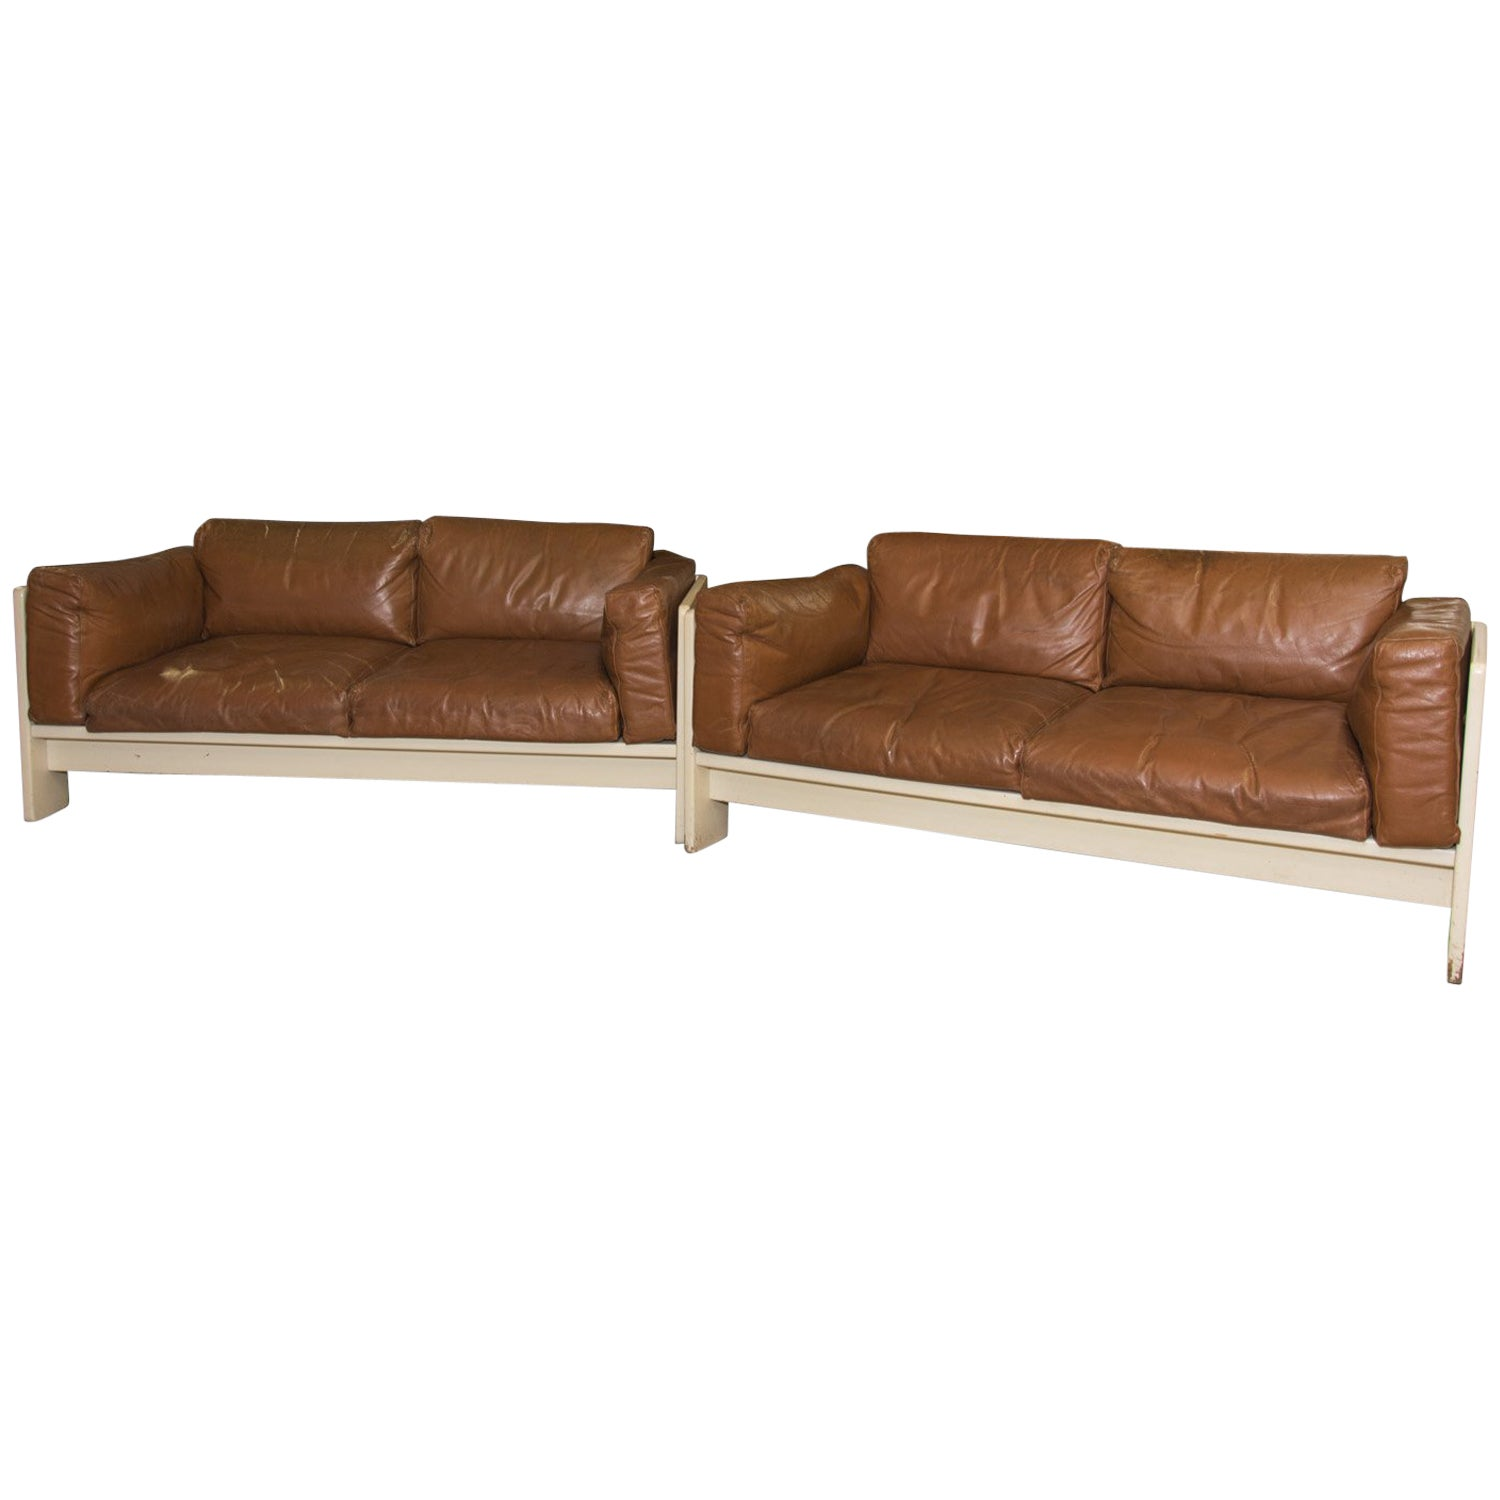 Pair of Bastiano Leather Sofas by Afra & Tobia Scarpa, 1970s